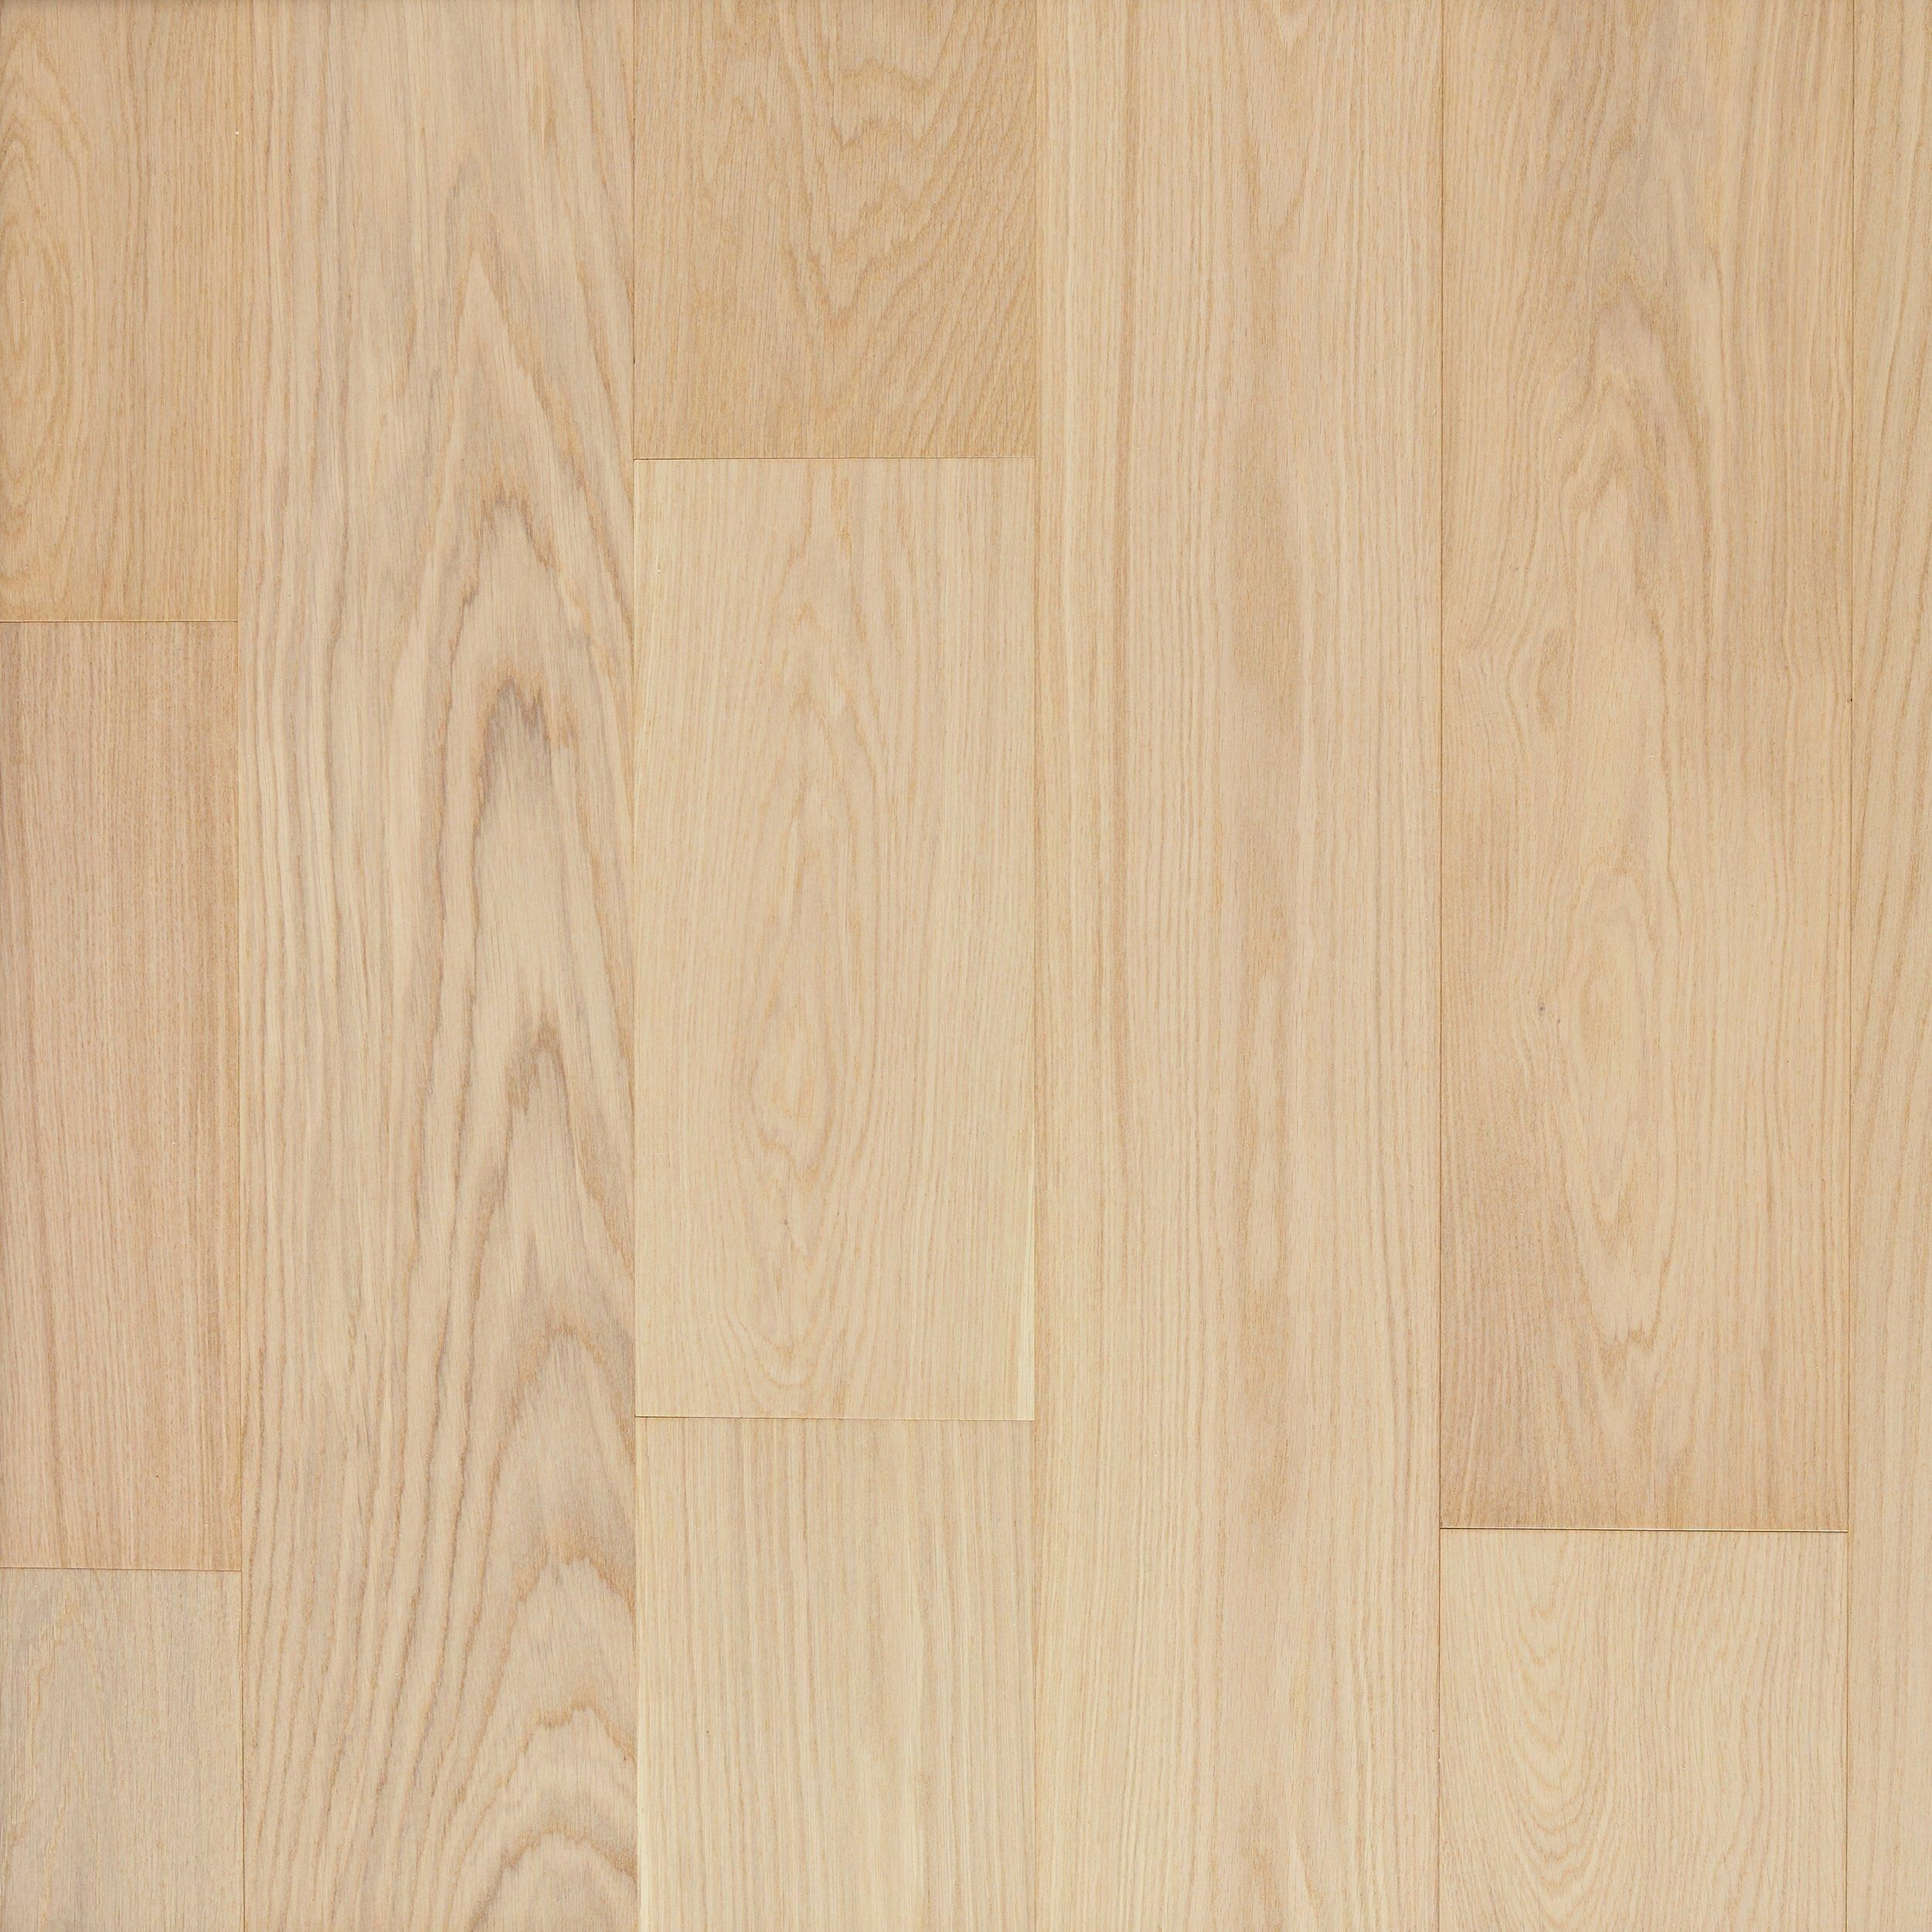 Marley European Oak Wire Brushed Engineered Hardwood In 2020 Engineered Hardwood Hardwood Engineered Timber Flooring